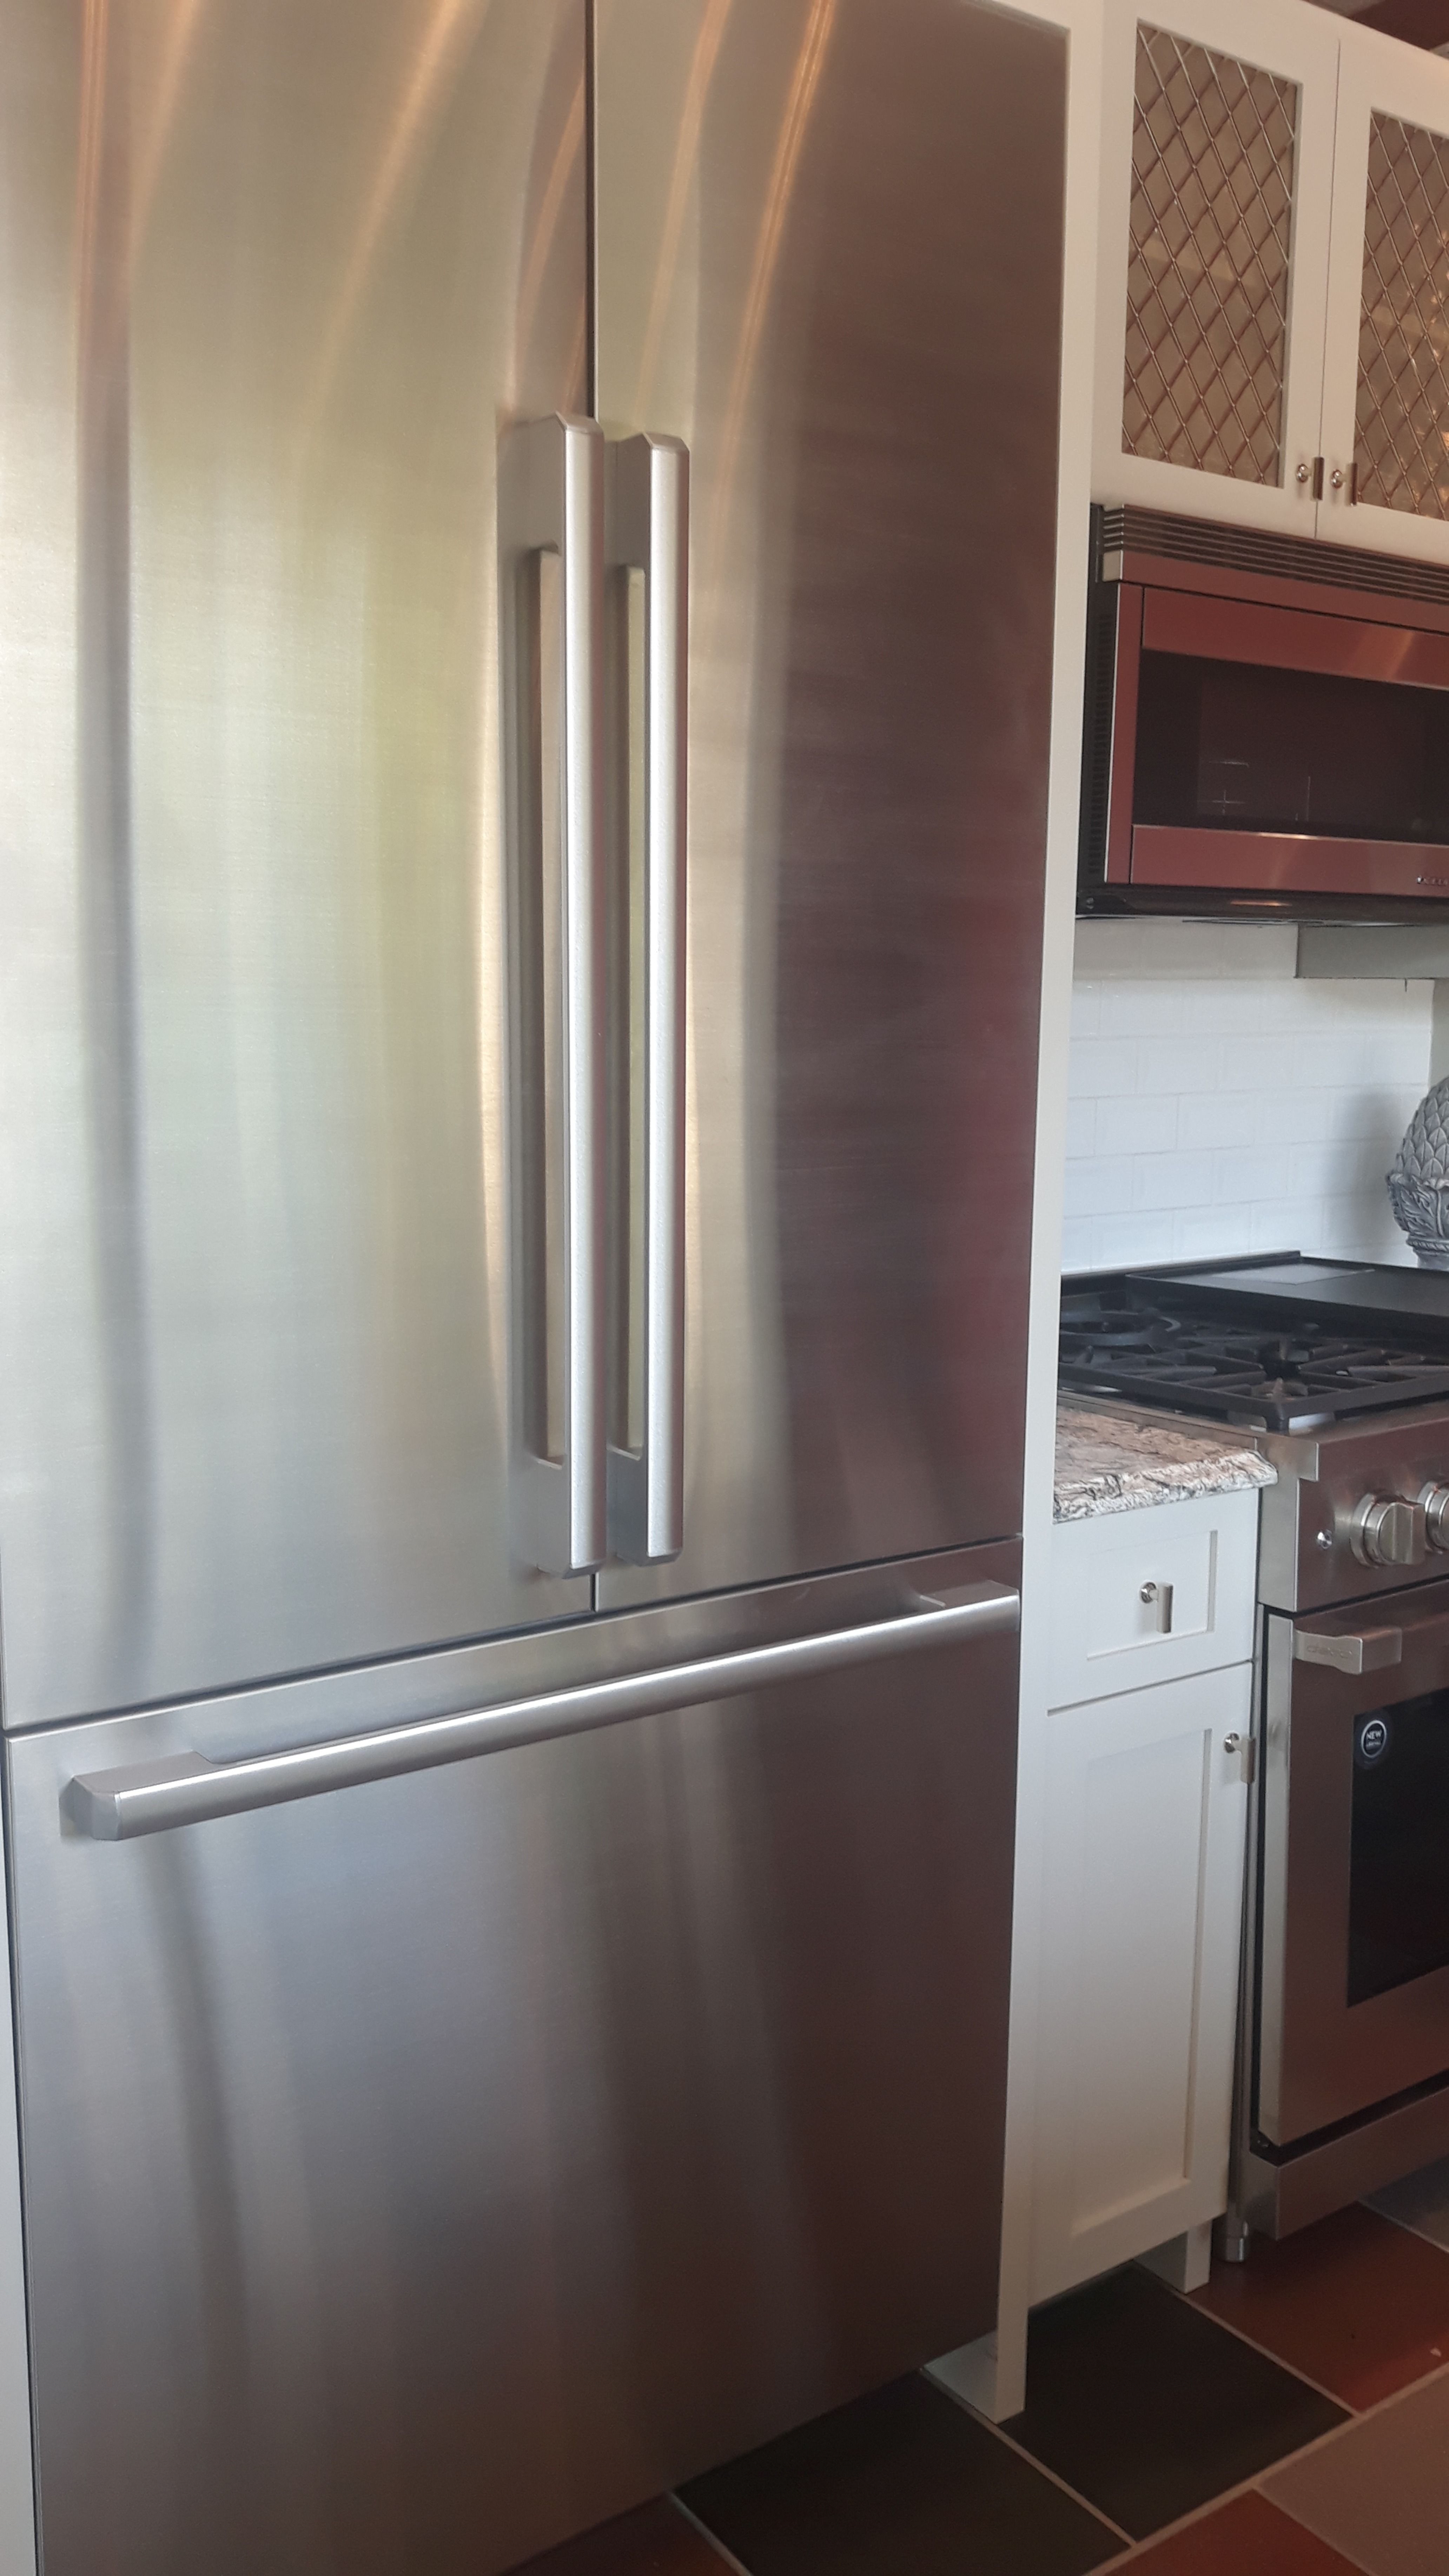 Fresh Is Best Dacor Modernist 36 Built In French Door Refrigerator Provides The Most Precise Temperature Cont French Doors French Door Refrigerator Modernist